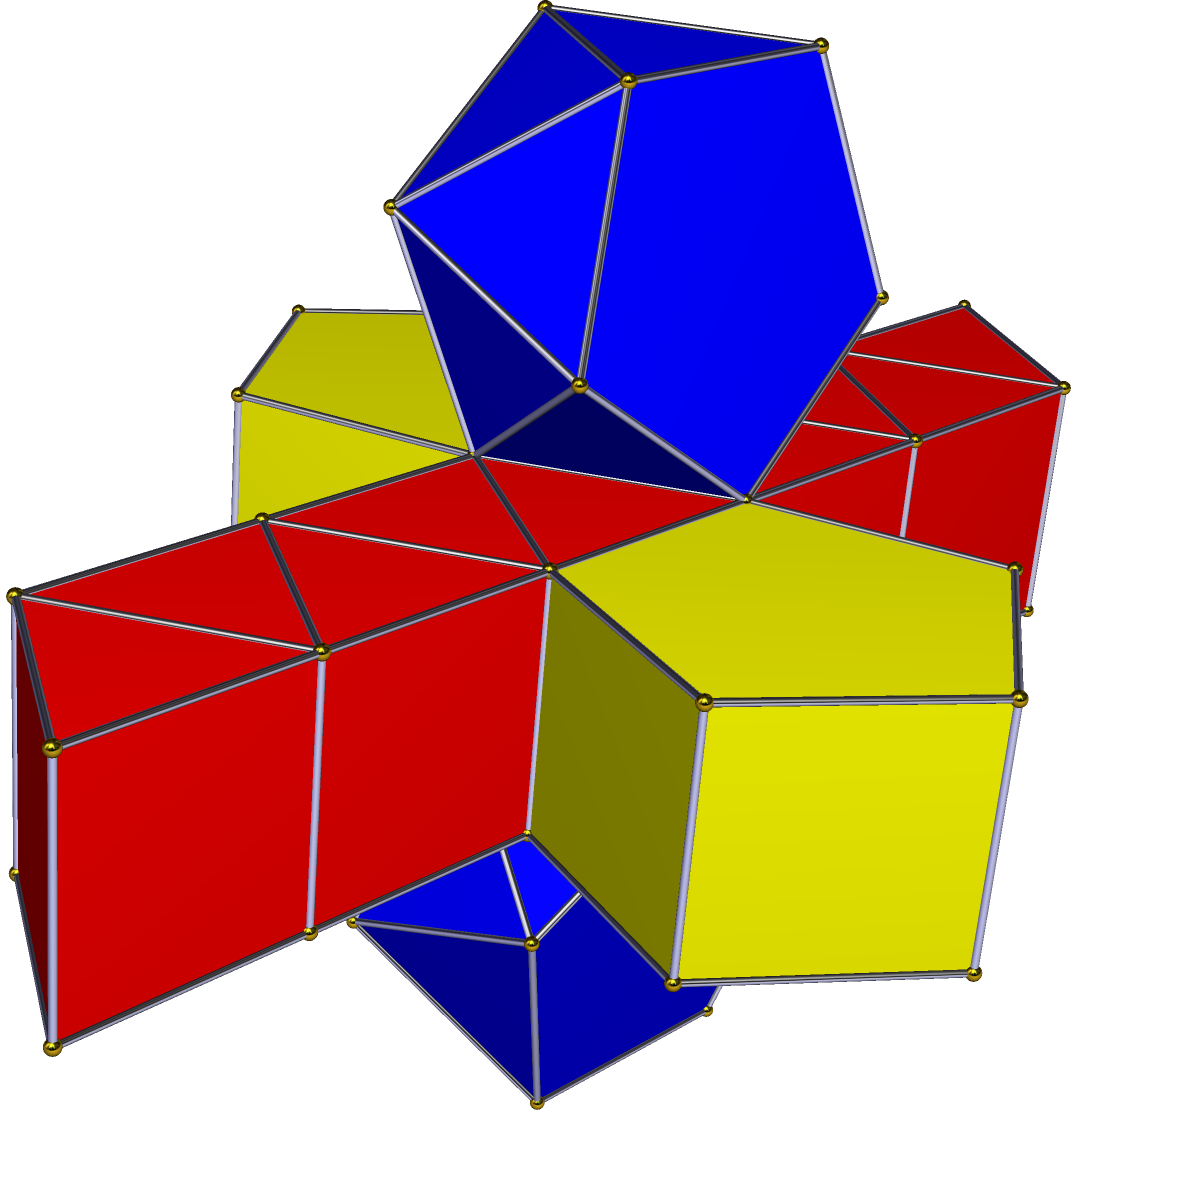 Images of Nonagonal Prism Net - www industrious info